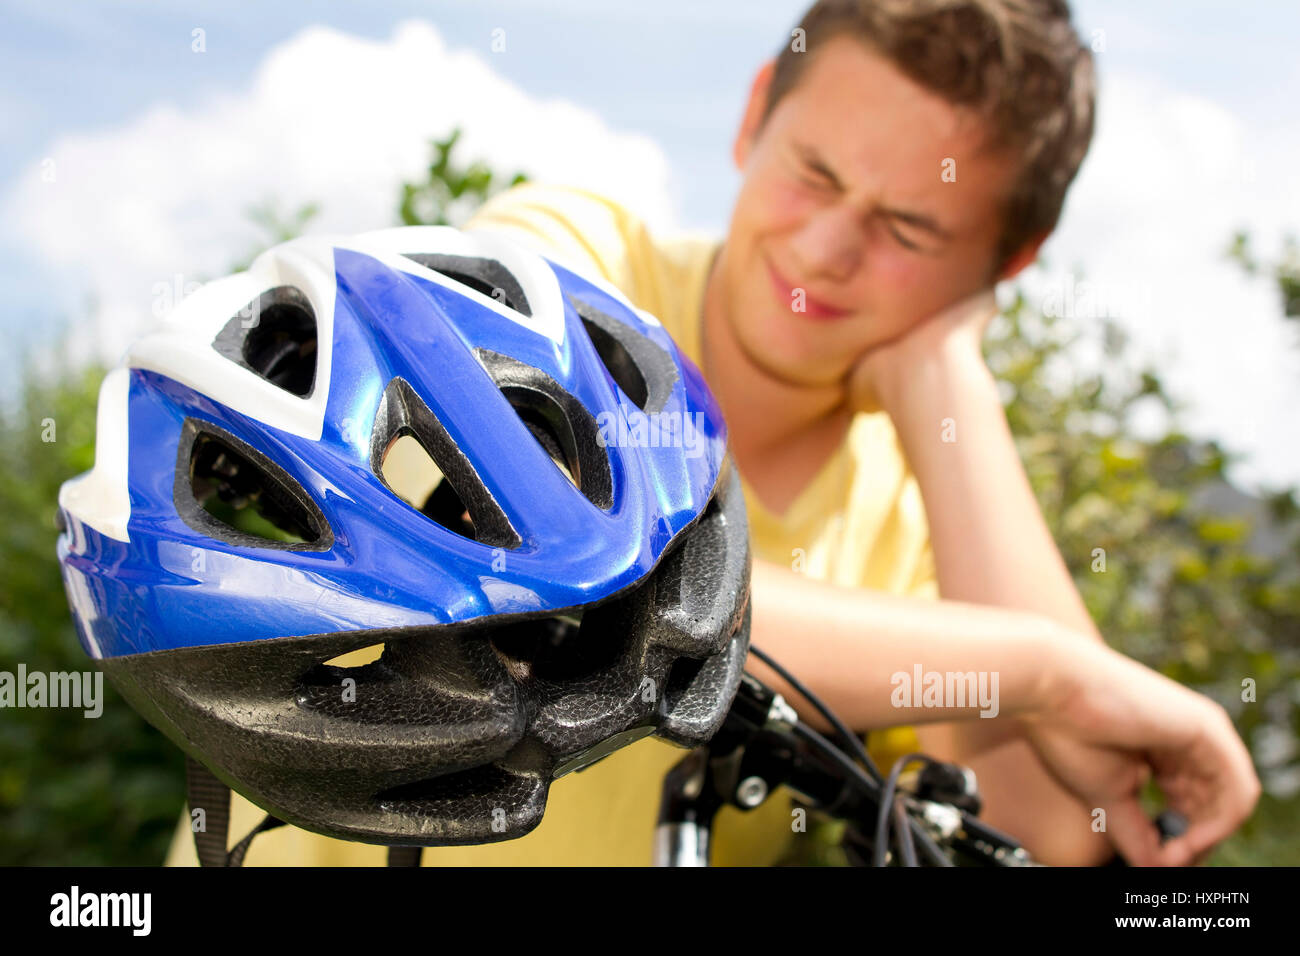 Teenager against bicycle helmet, Teenager gegen Fahrradhelm Stock Photo